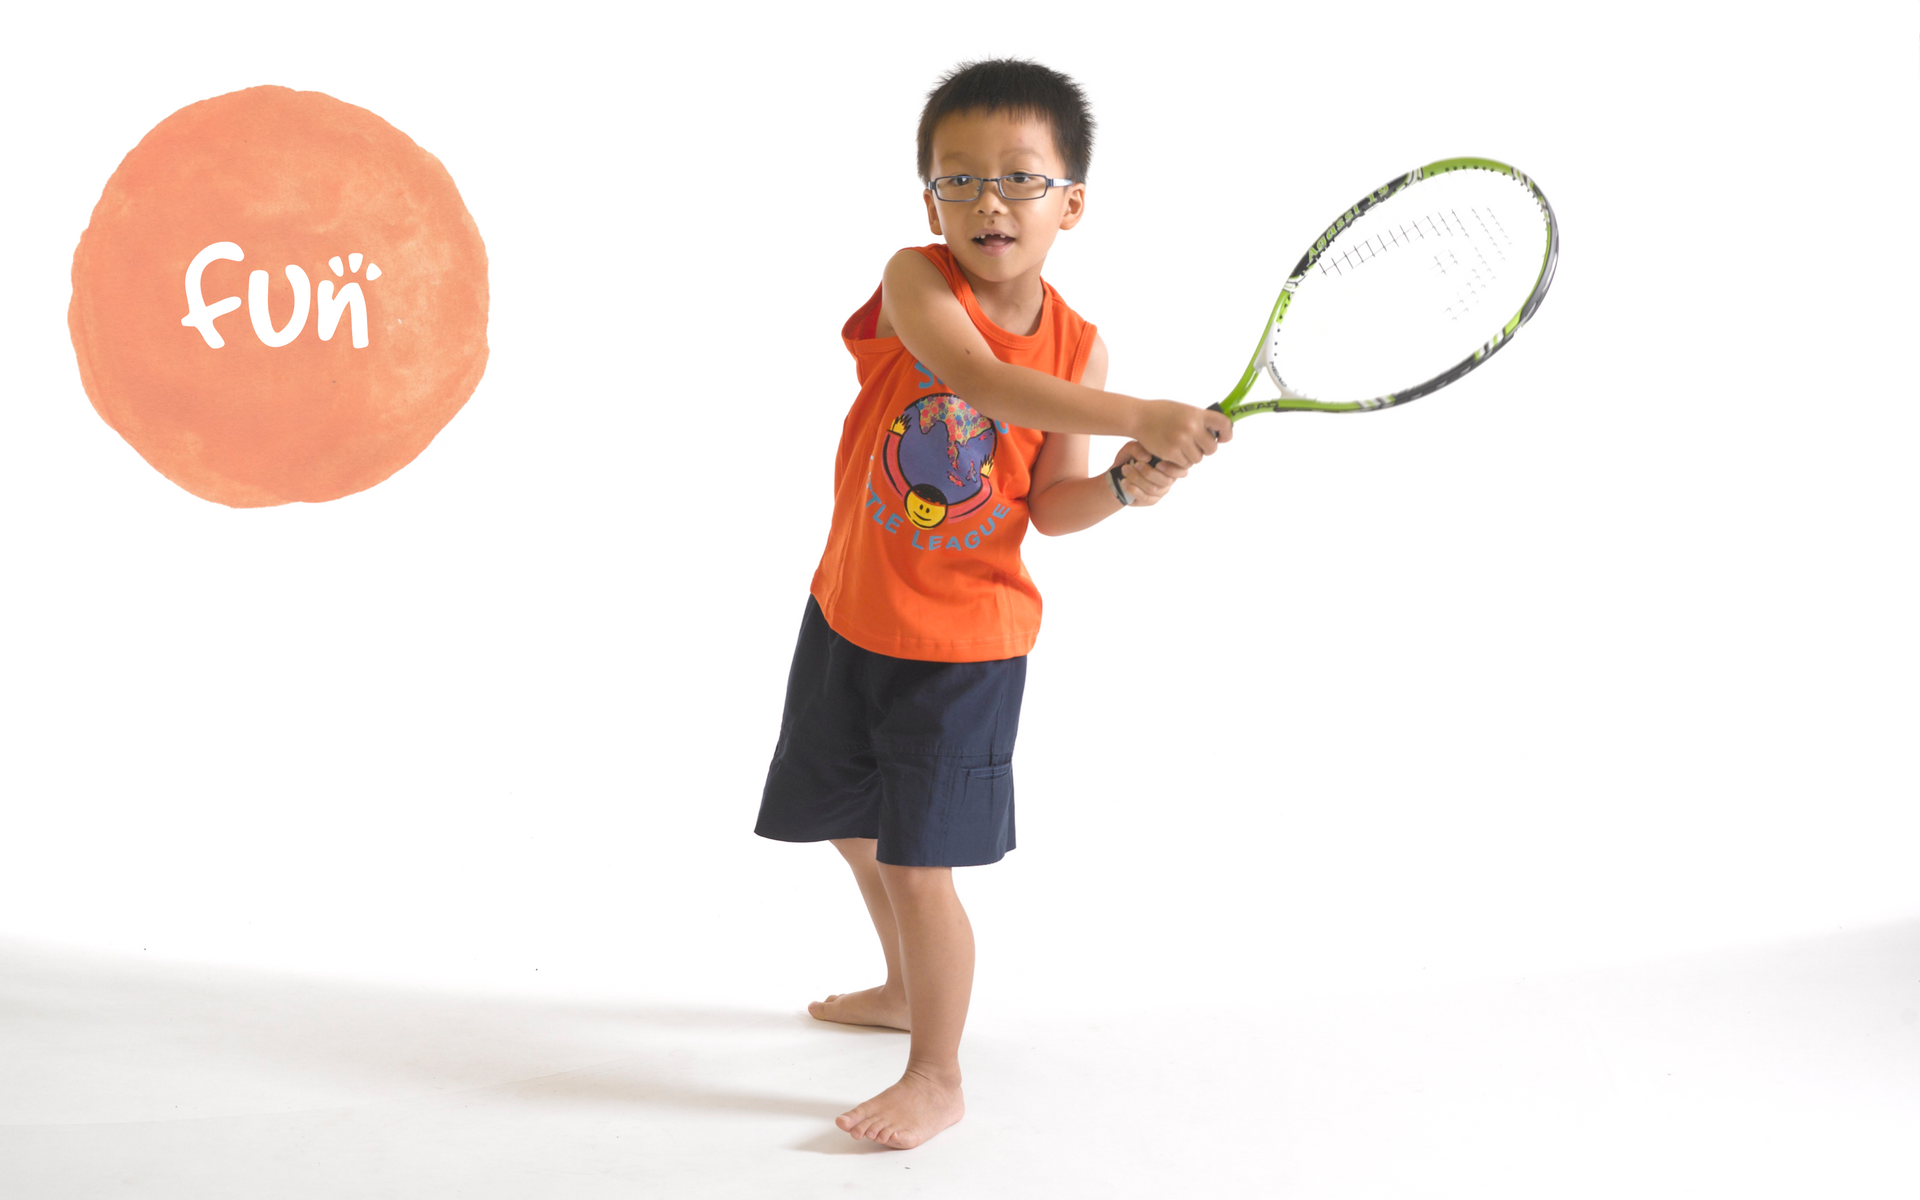 Shaws Little League Multisport Programmes and Classes for Toddlers and Kids